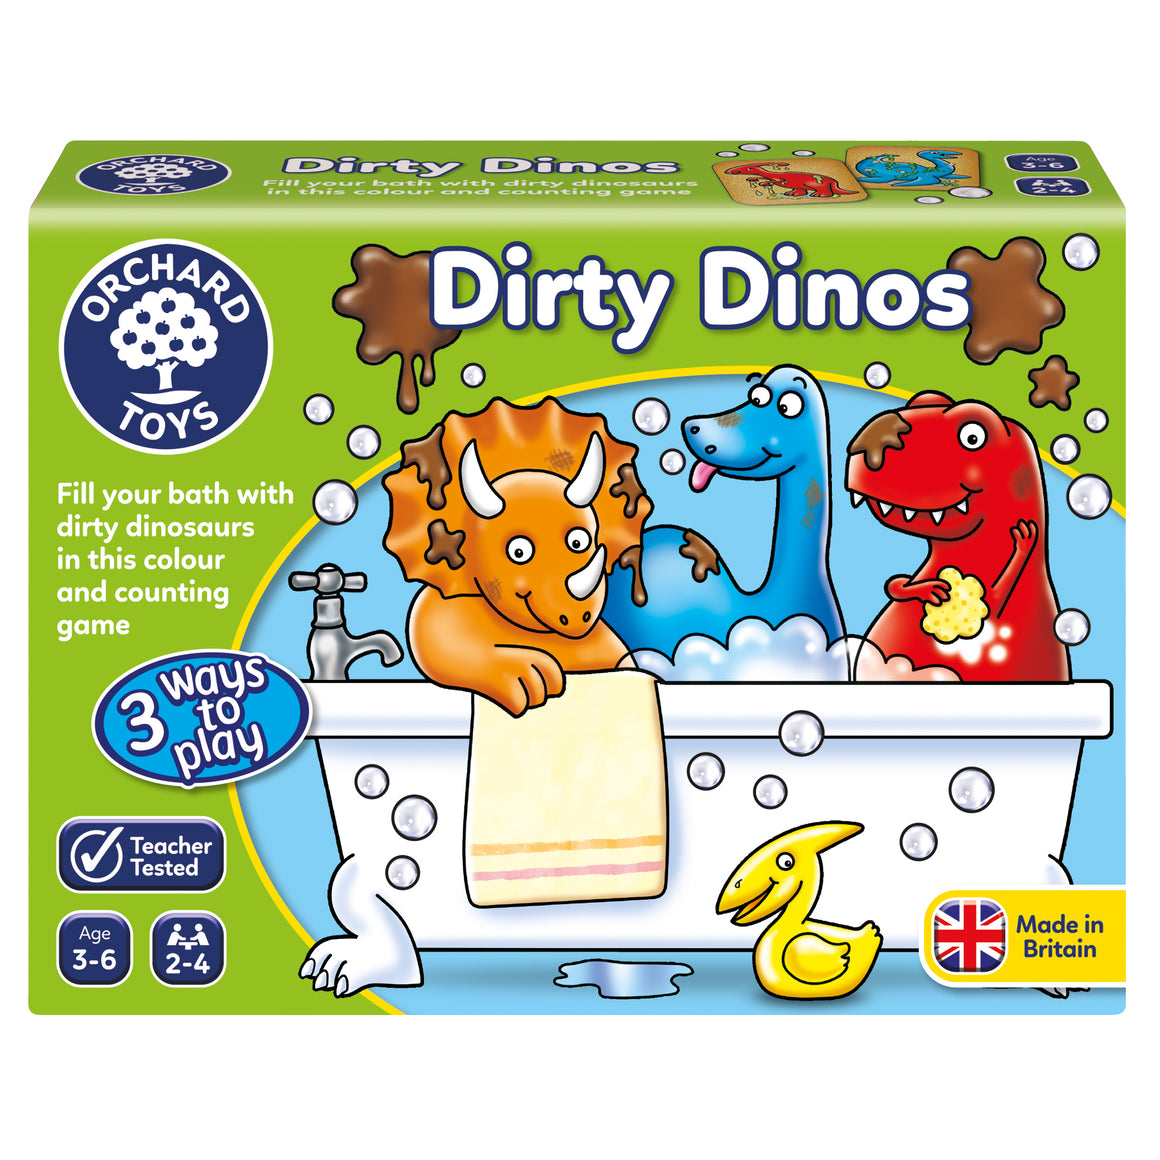 Dirty Dinos - The Tiny Toy Store